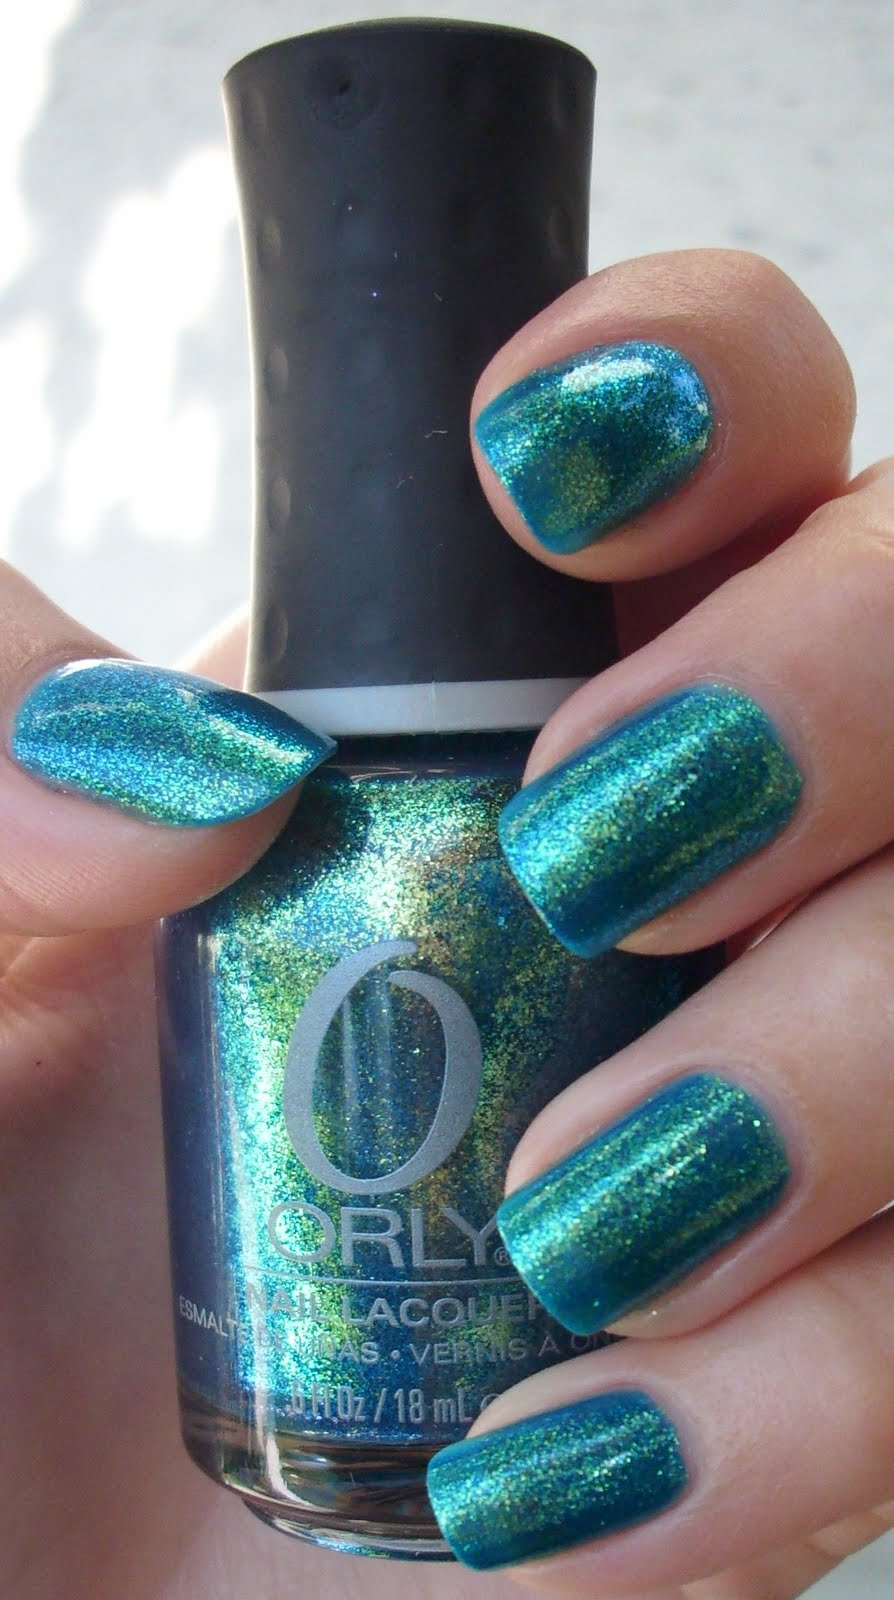 Did someone say nail polish?: Orly - Halley's Comet